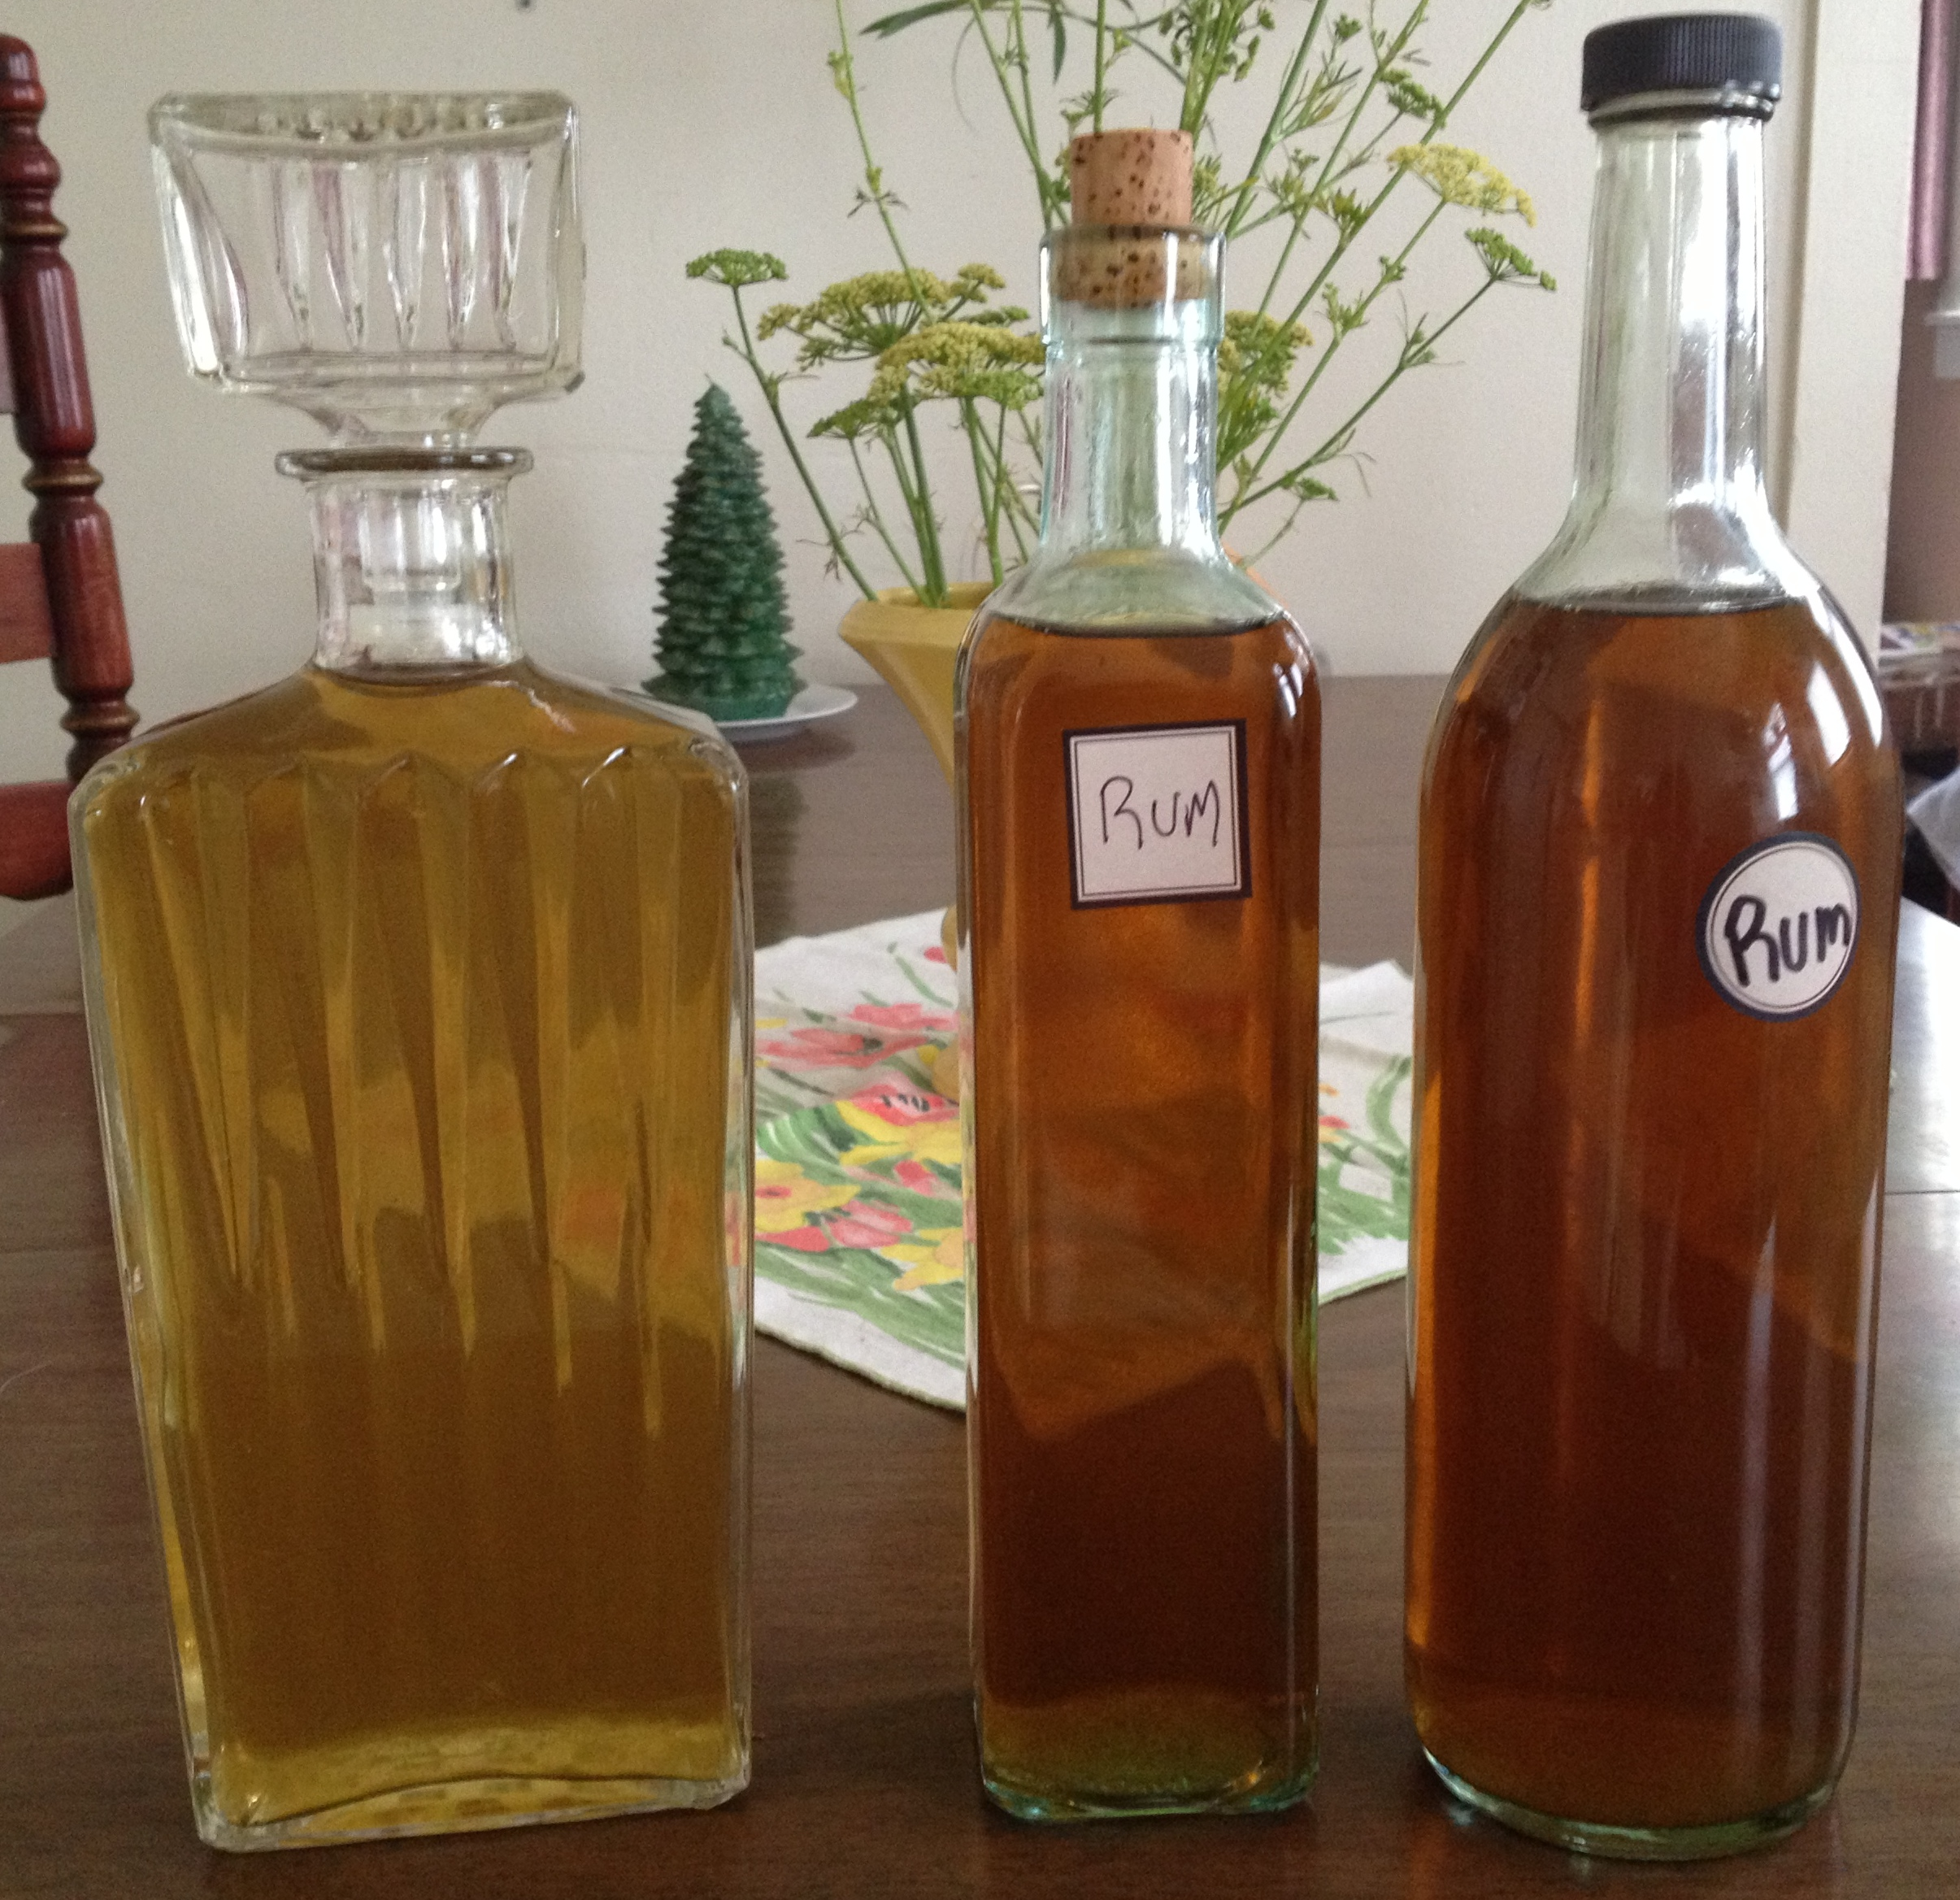 alcohol strips the terpenes from plants without heat, making delivery of this tonic non-psychoactive.  photo: sharon letts